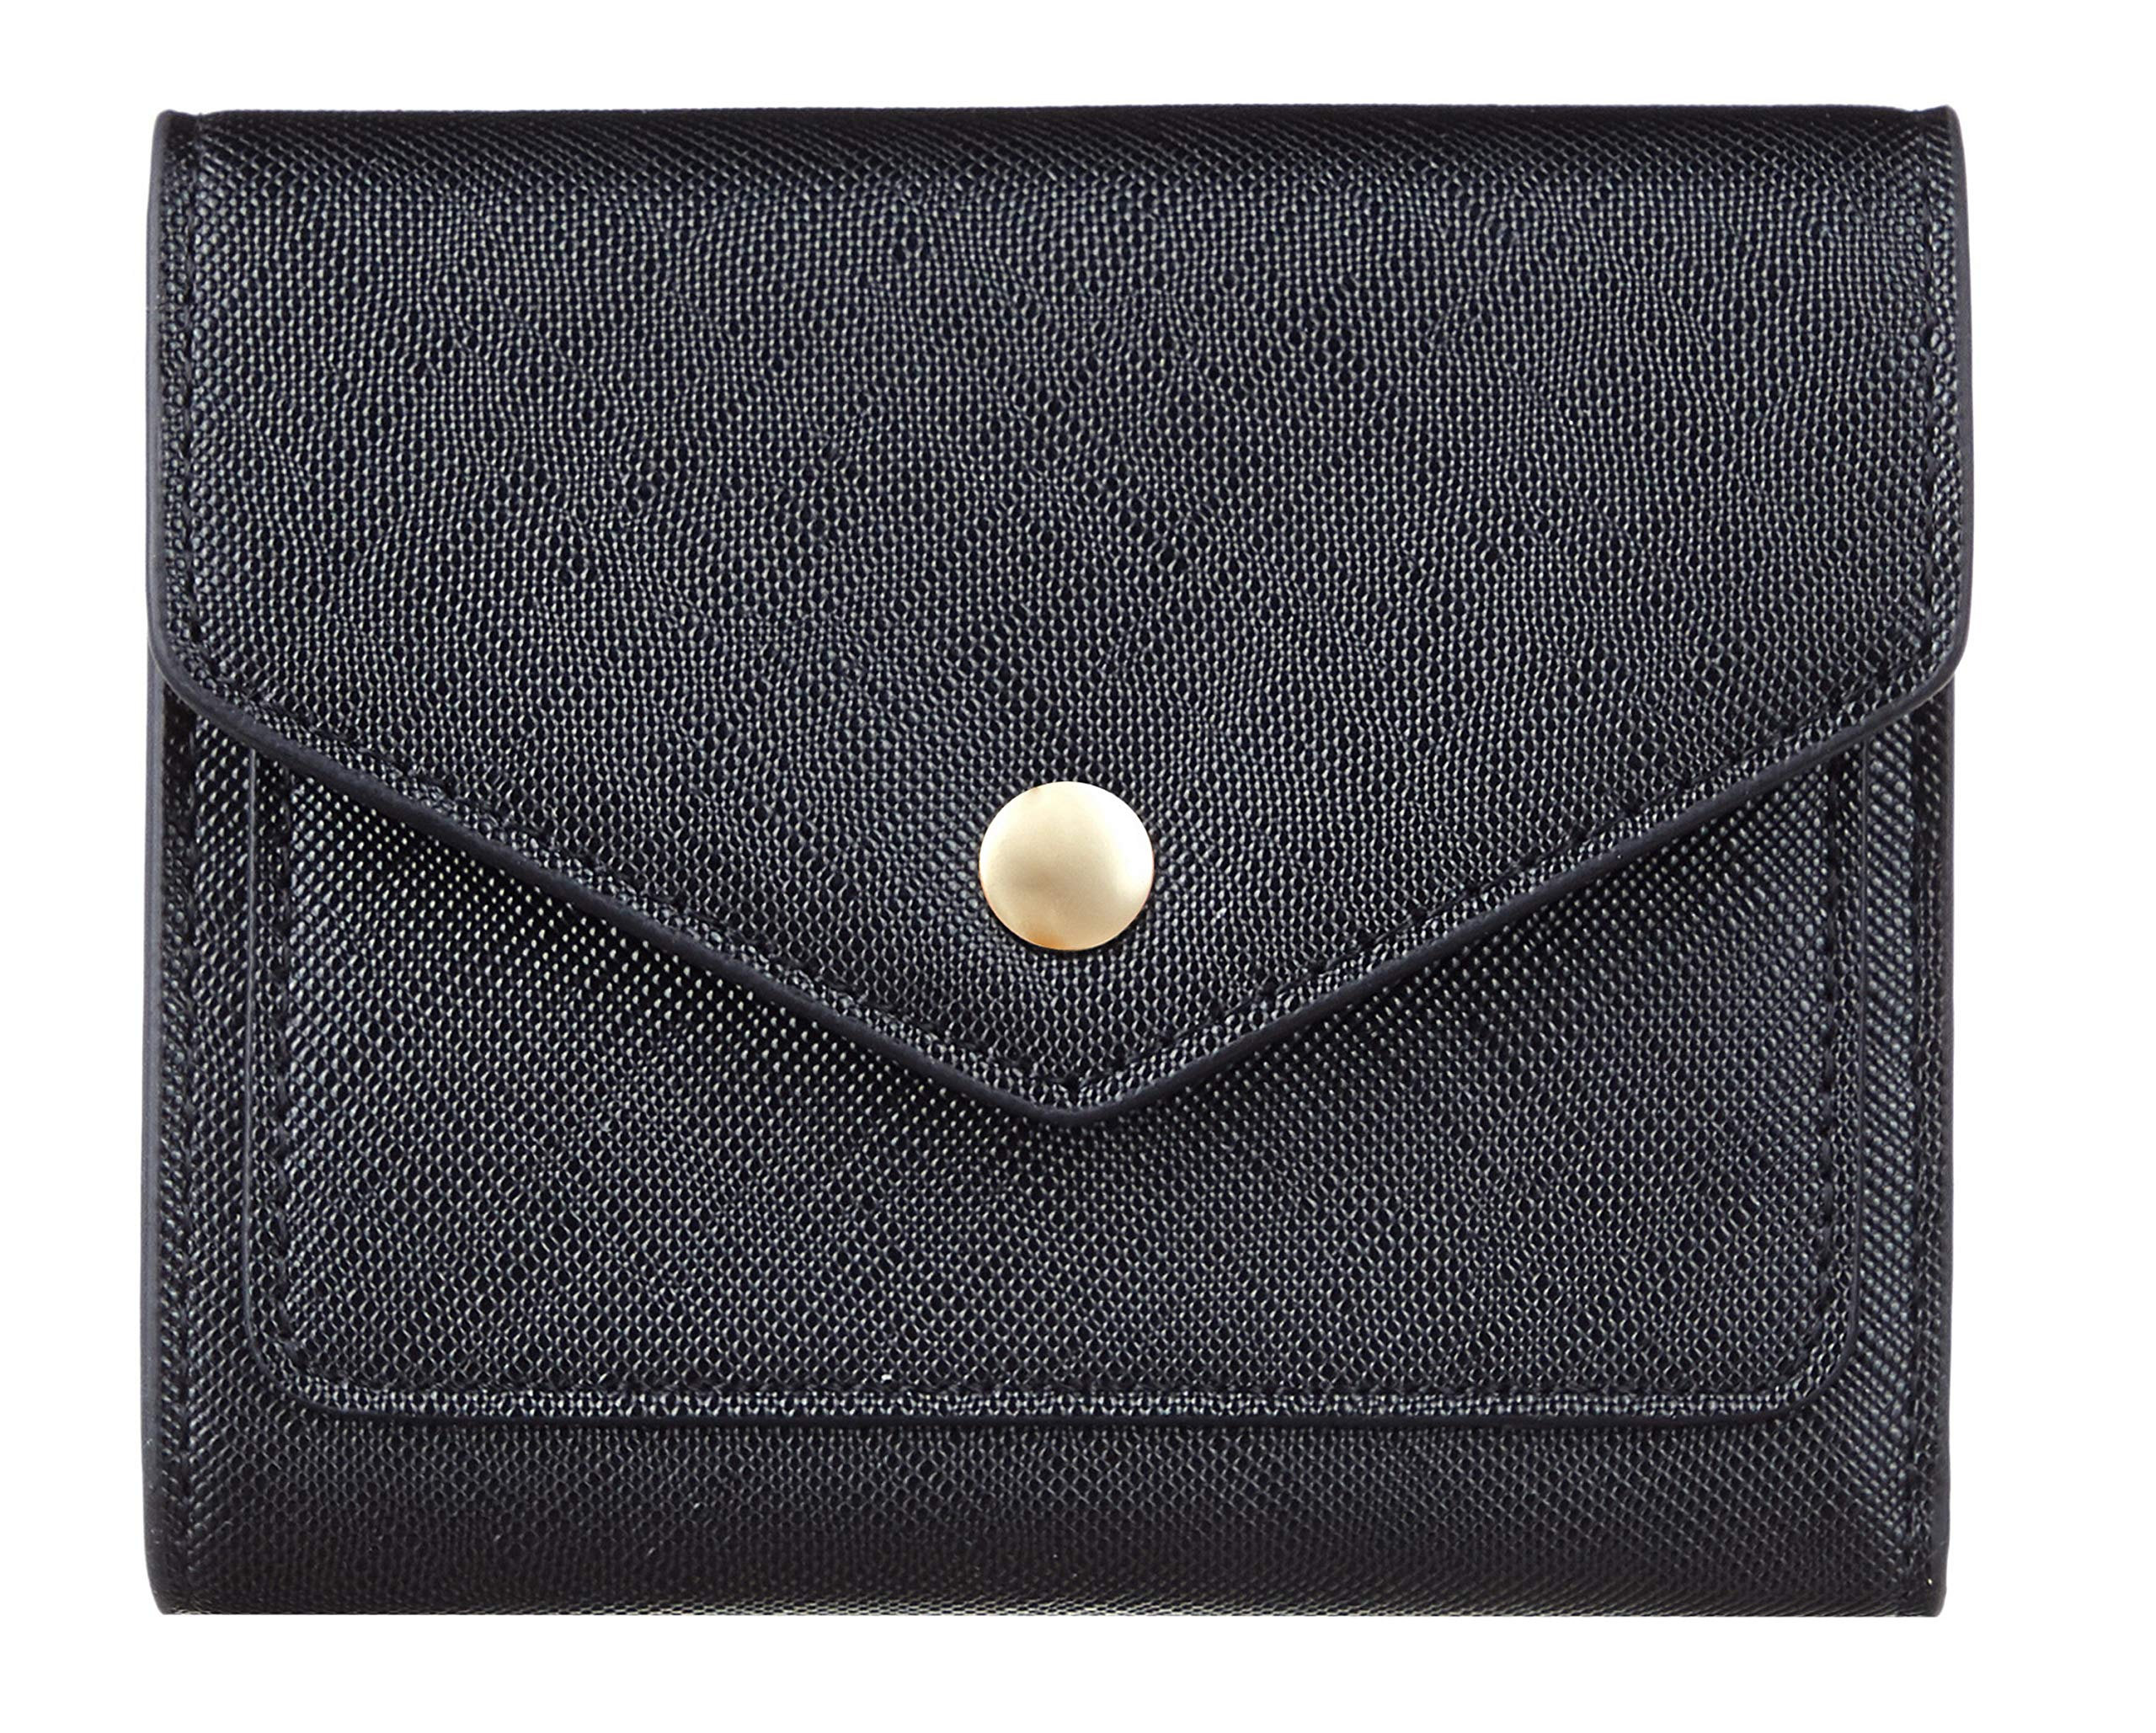 Gostwo Leather Small Wallet for Women RFID Blocking Women's Credit Card Holder Mini Bifold Pocket Purse